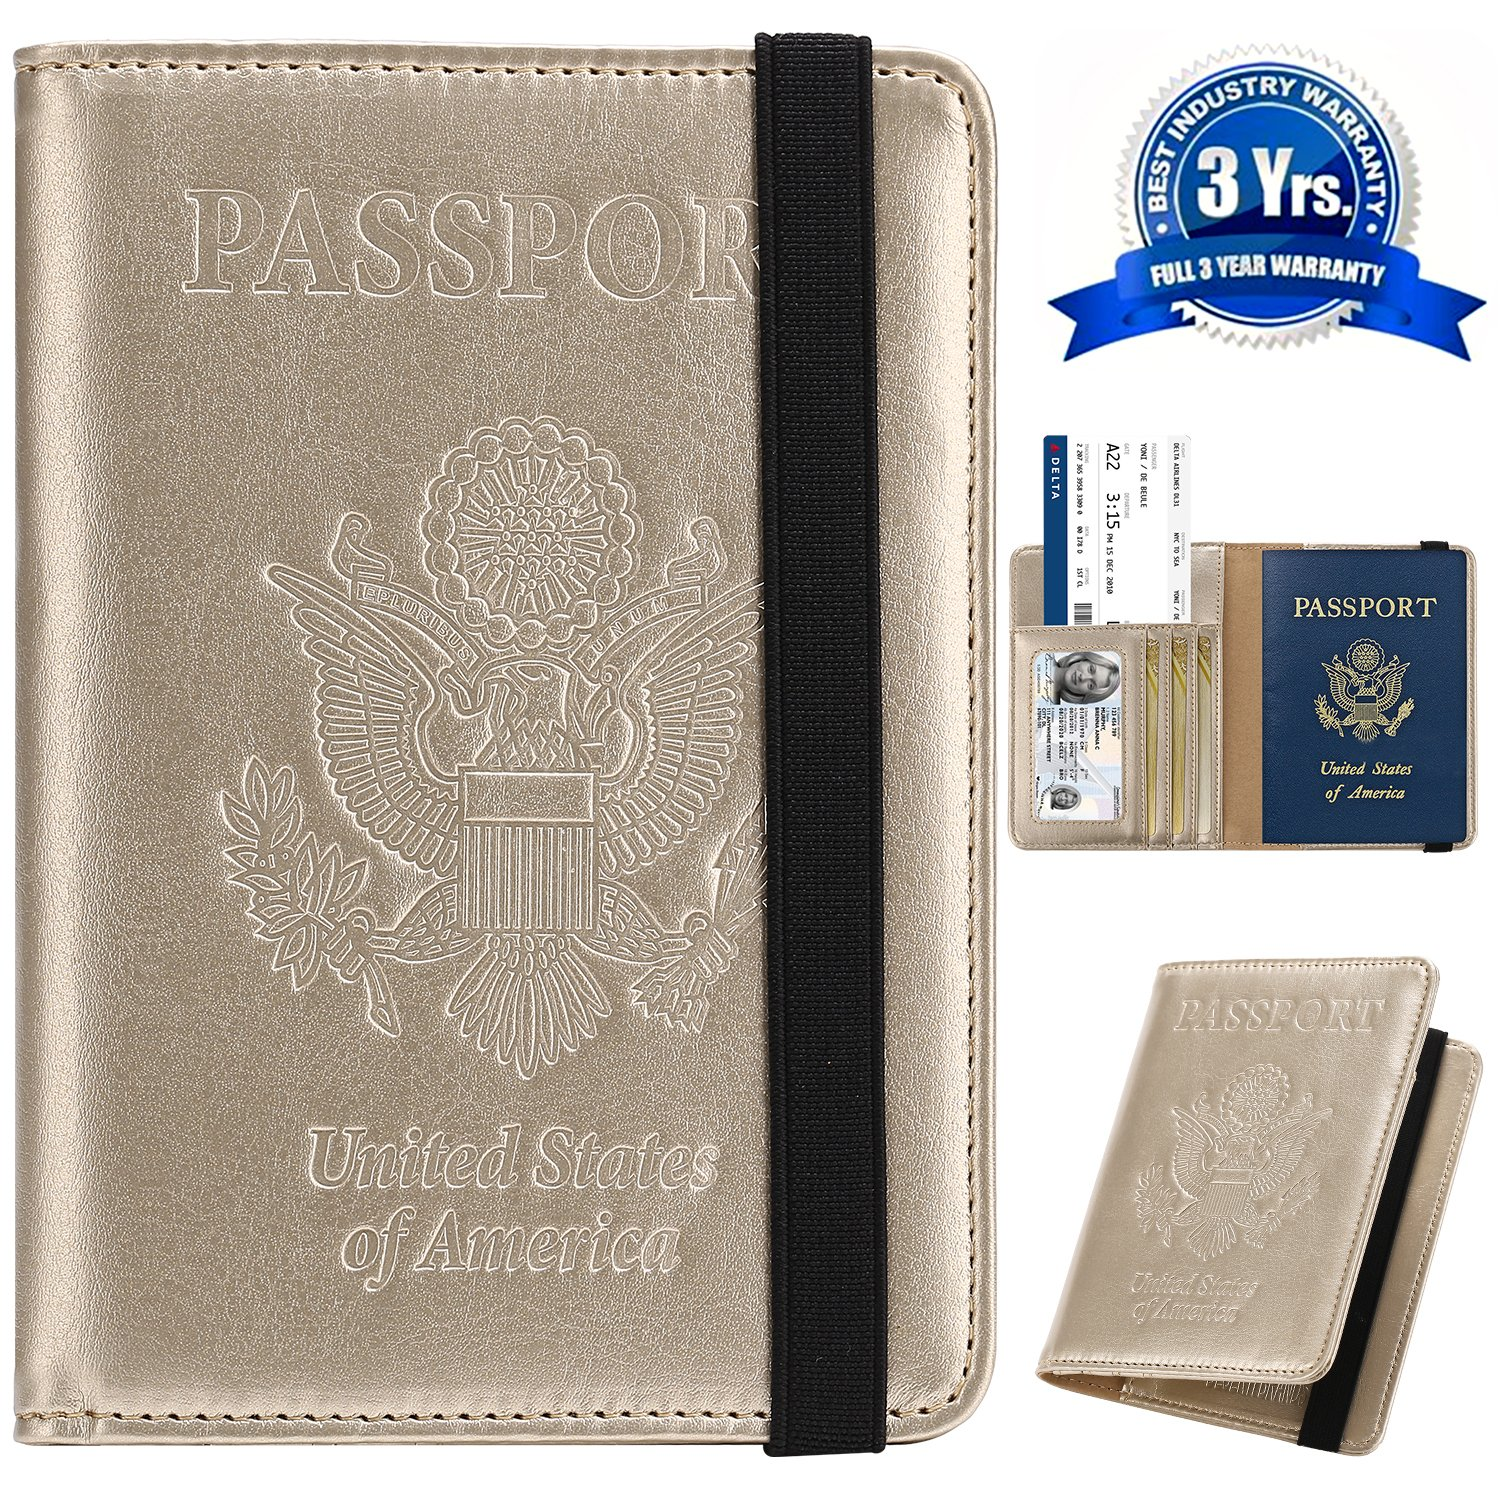 1e9076e5433a Passport Holder Cover Wallet DESERTI BRANDS RFID Blocking Leather Card Case  Travel Document Organizer - Gold